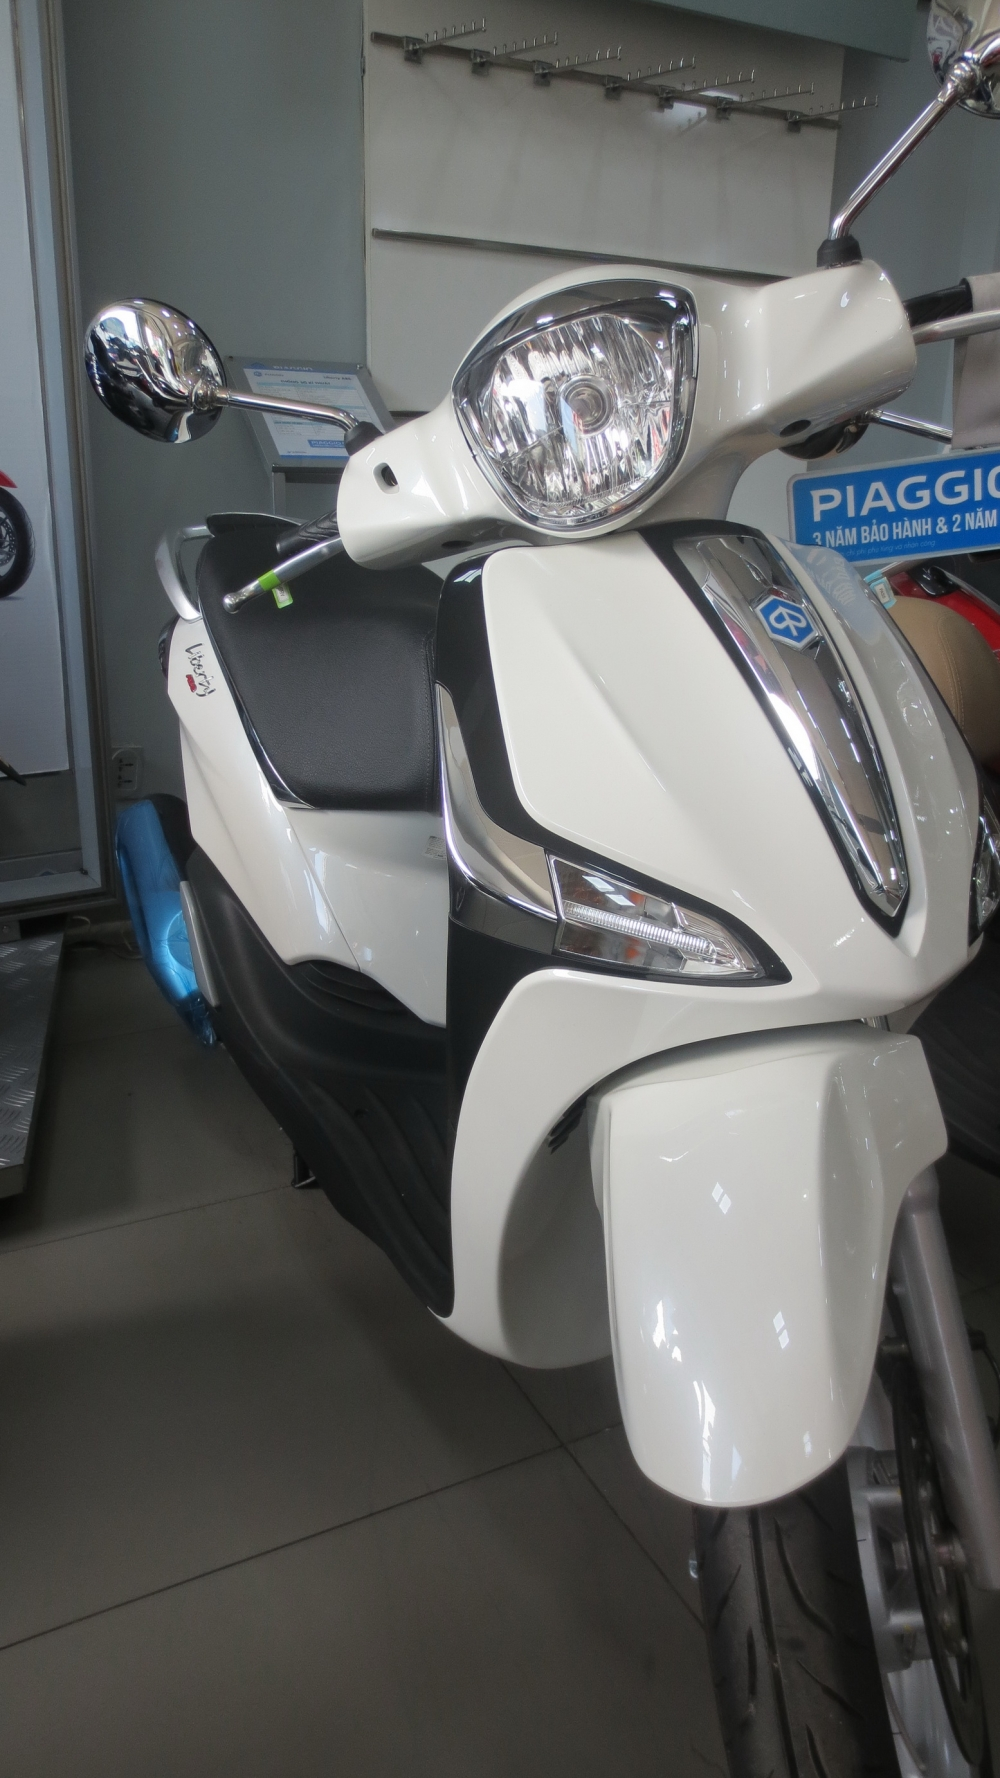 VESPA chinh hang gia tot nhat Update lien tuc - 34